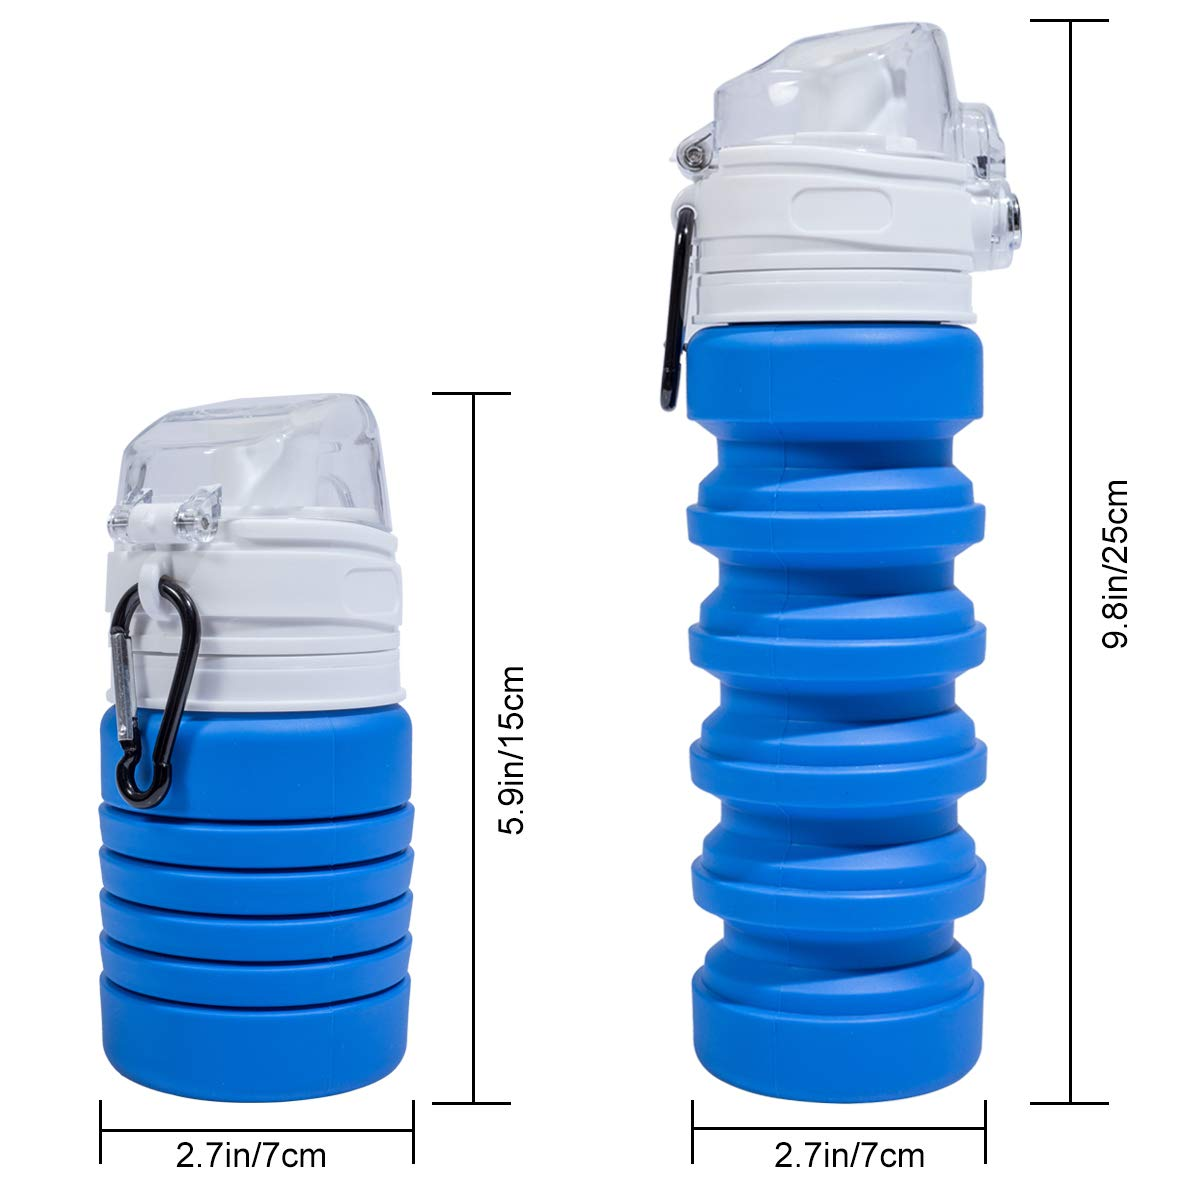 b79195d270c1 LIHEXING Collapsible Water Bottles,Food-Grade Soft Folding Water  Bottle,Lightweight Portable Bottle for Outdoors Camping Hiking Travel  Sports-Blue